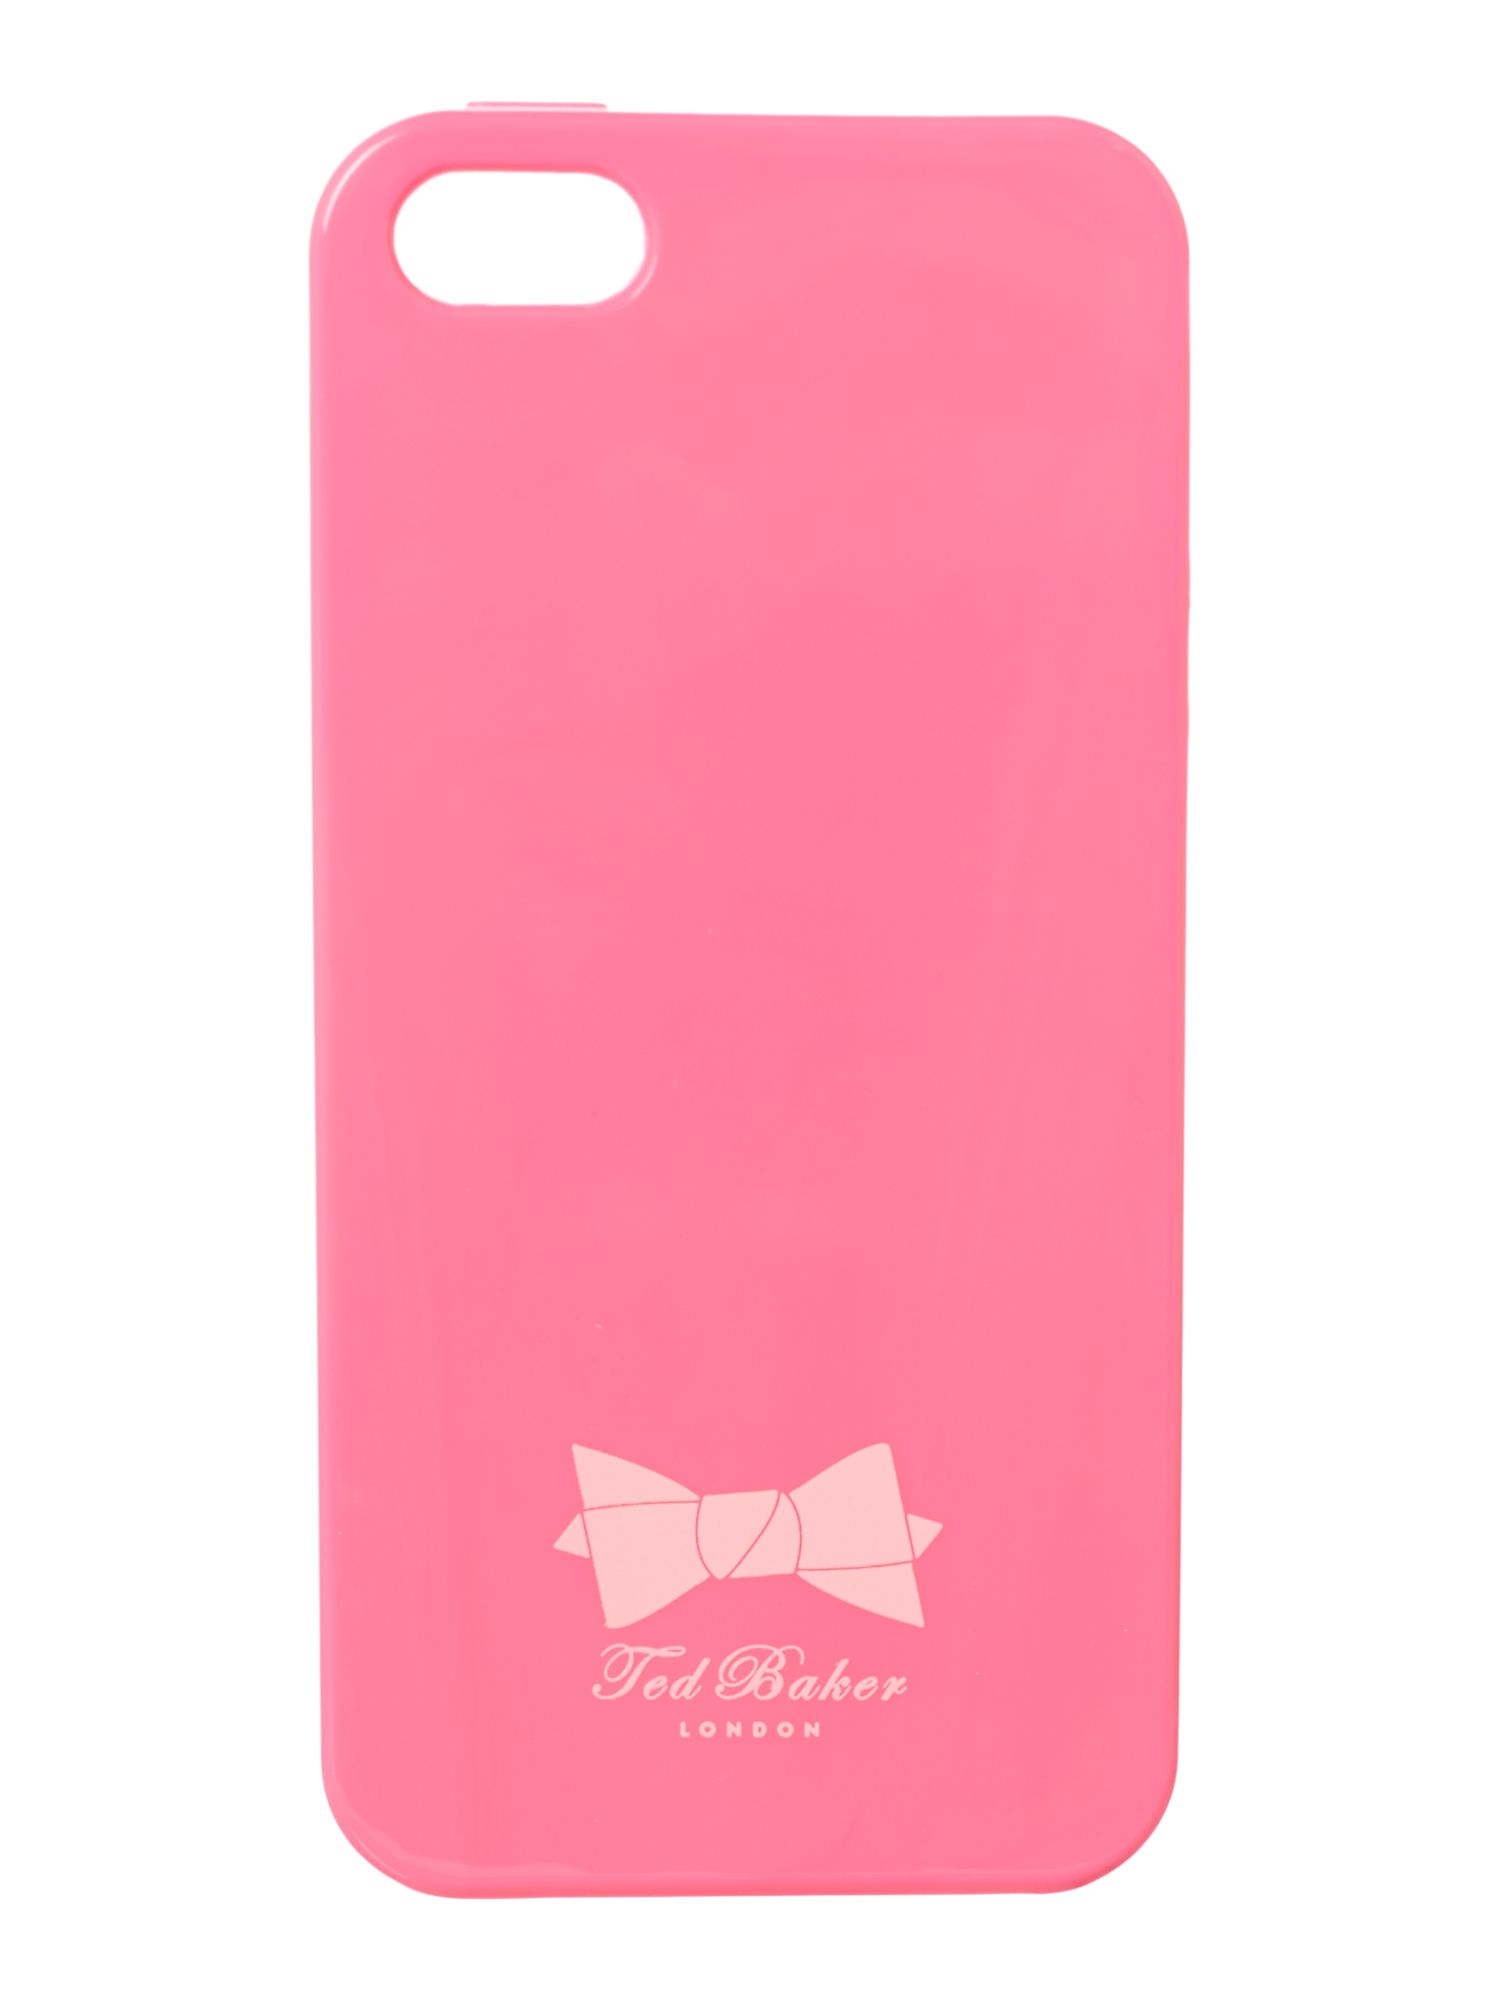 Apolito rubber phone case